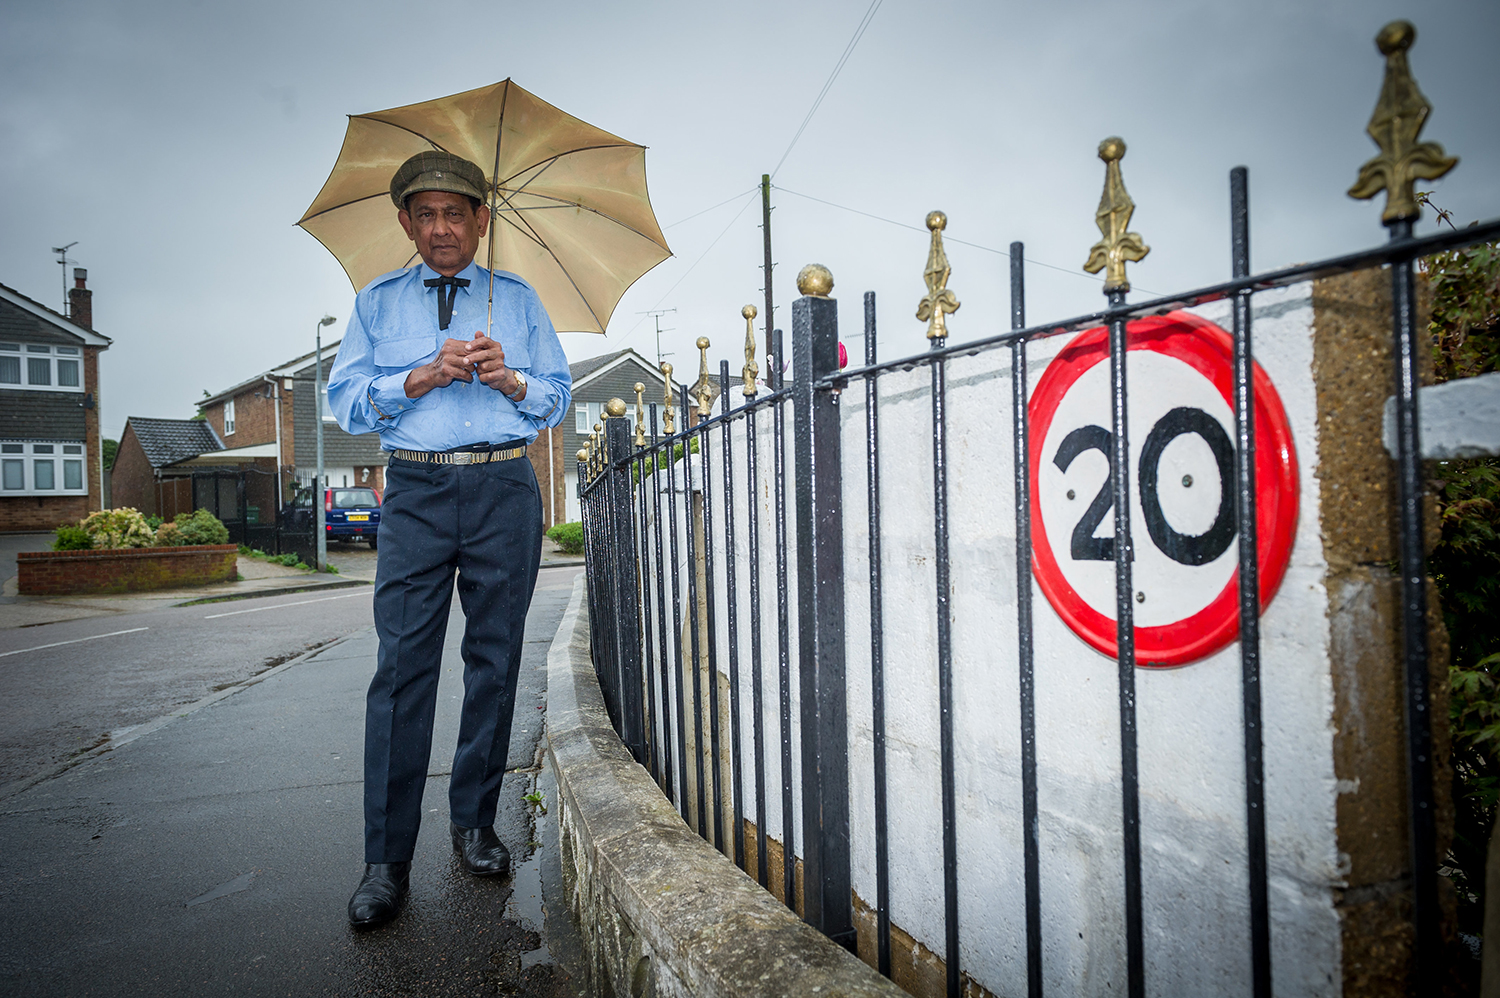 PENSIONER SPENDS £12K ON BARRIER TO PROTECT HIS HOME AFTER 13 CRASHES